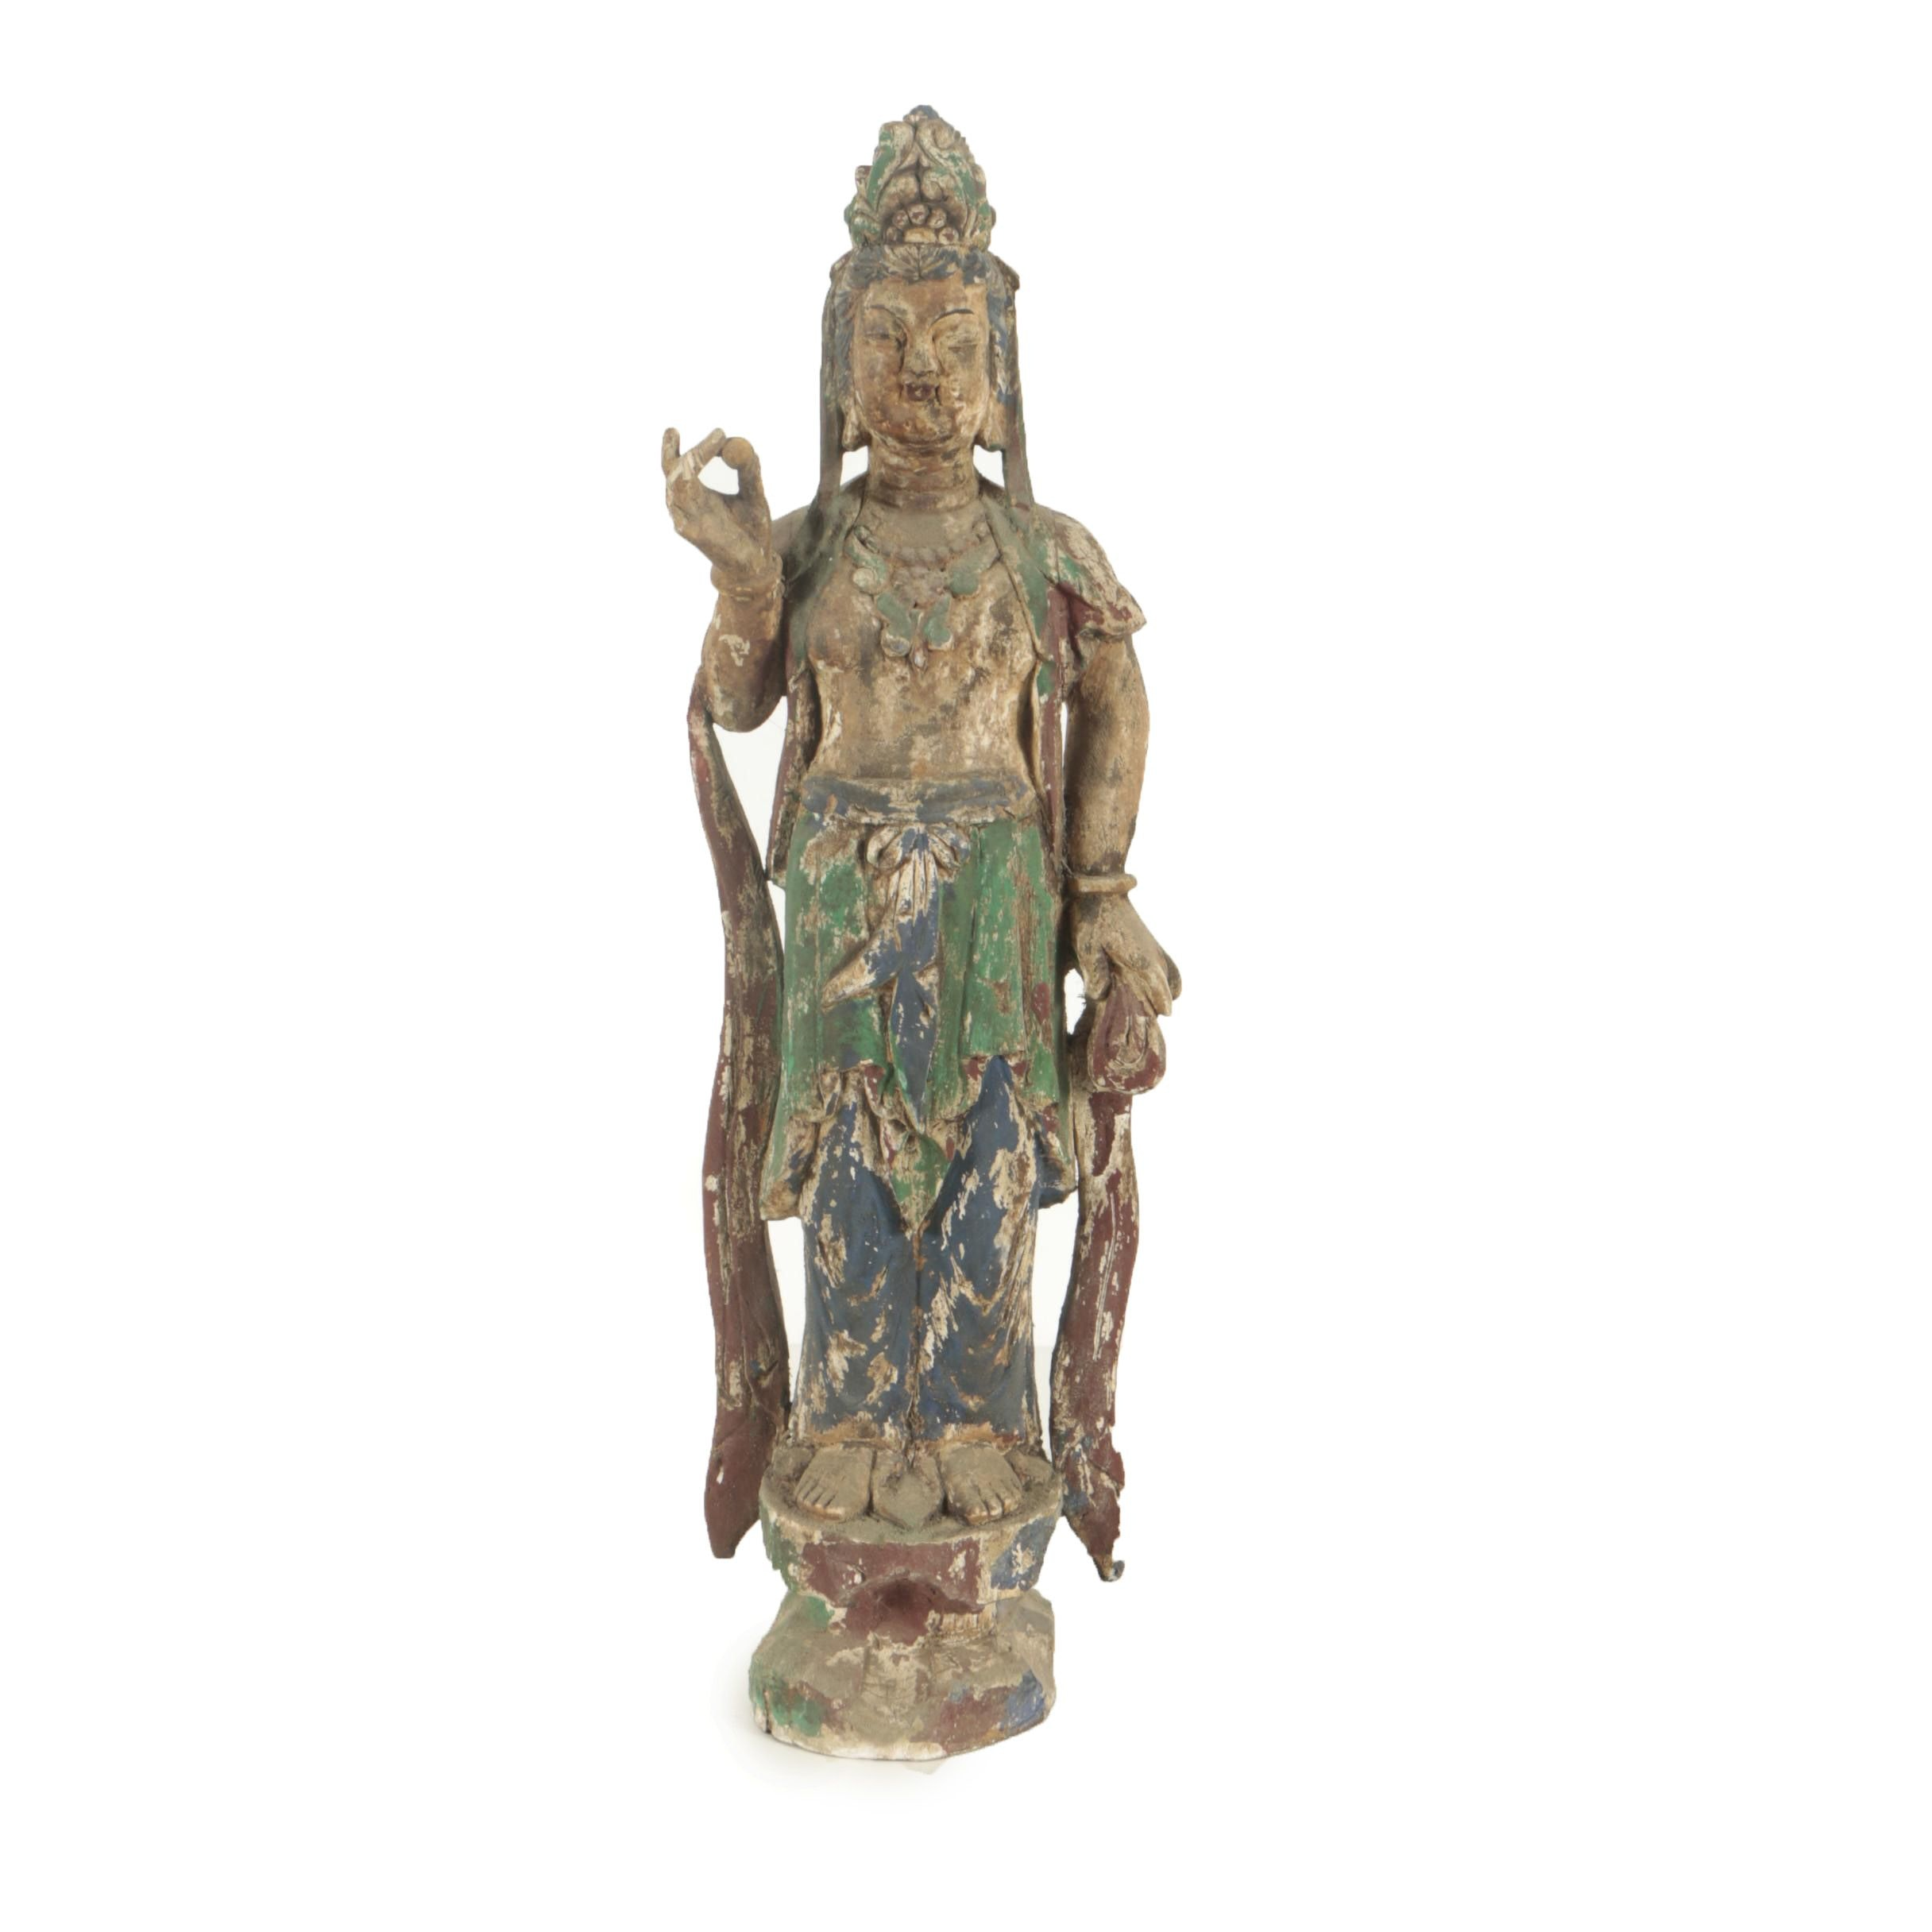 20th Century Standing Buddha Wooden Carving